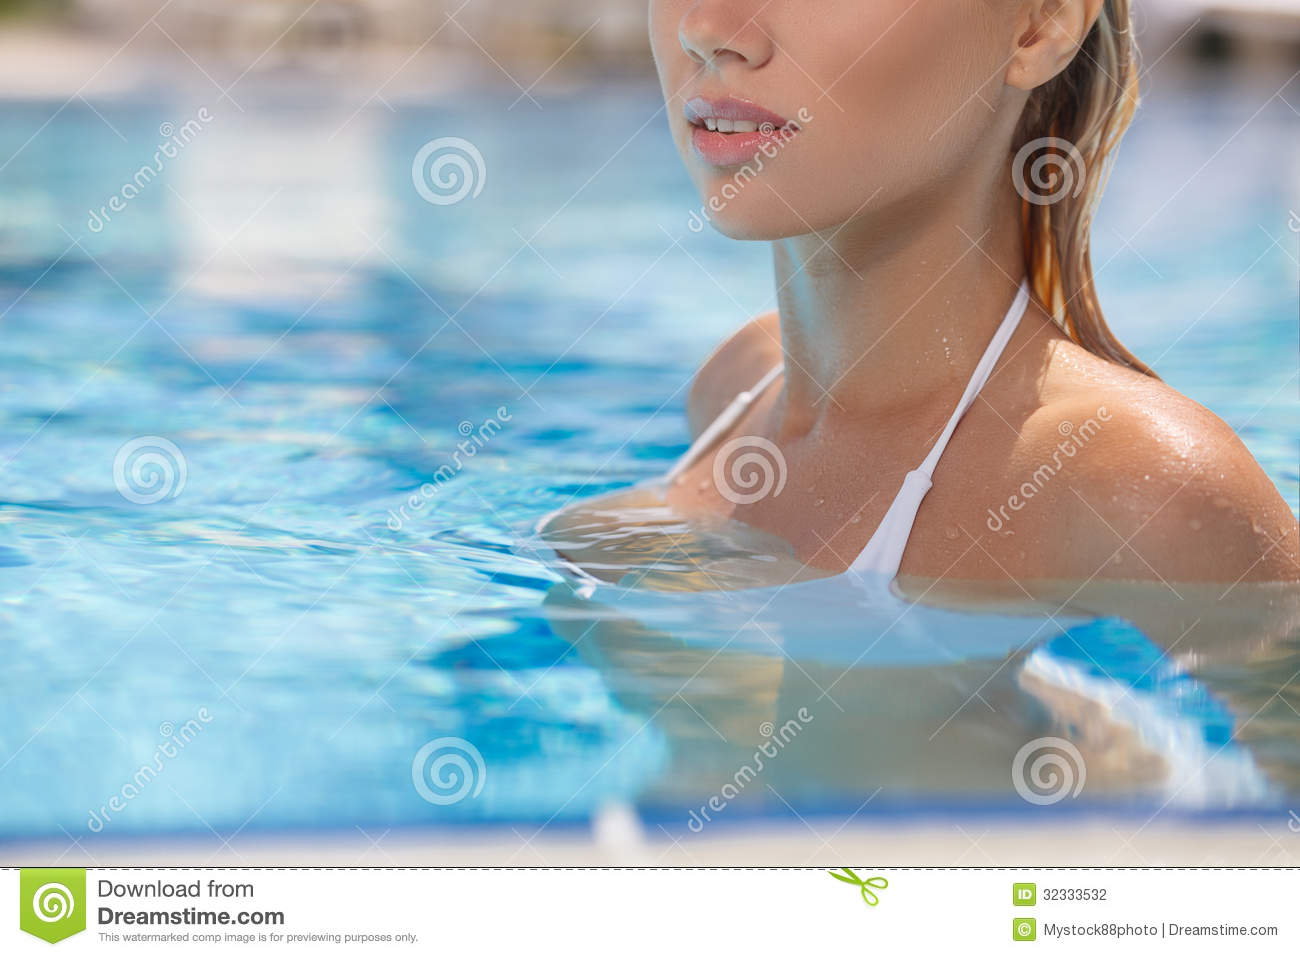 Beauty in swimming pool cropped image of beautiful young women stock photography image 32333532 for Beautiful swimming pool pictures